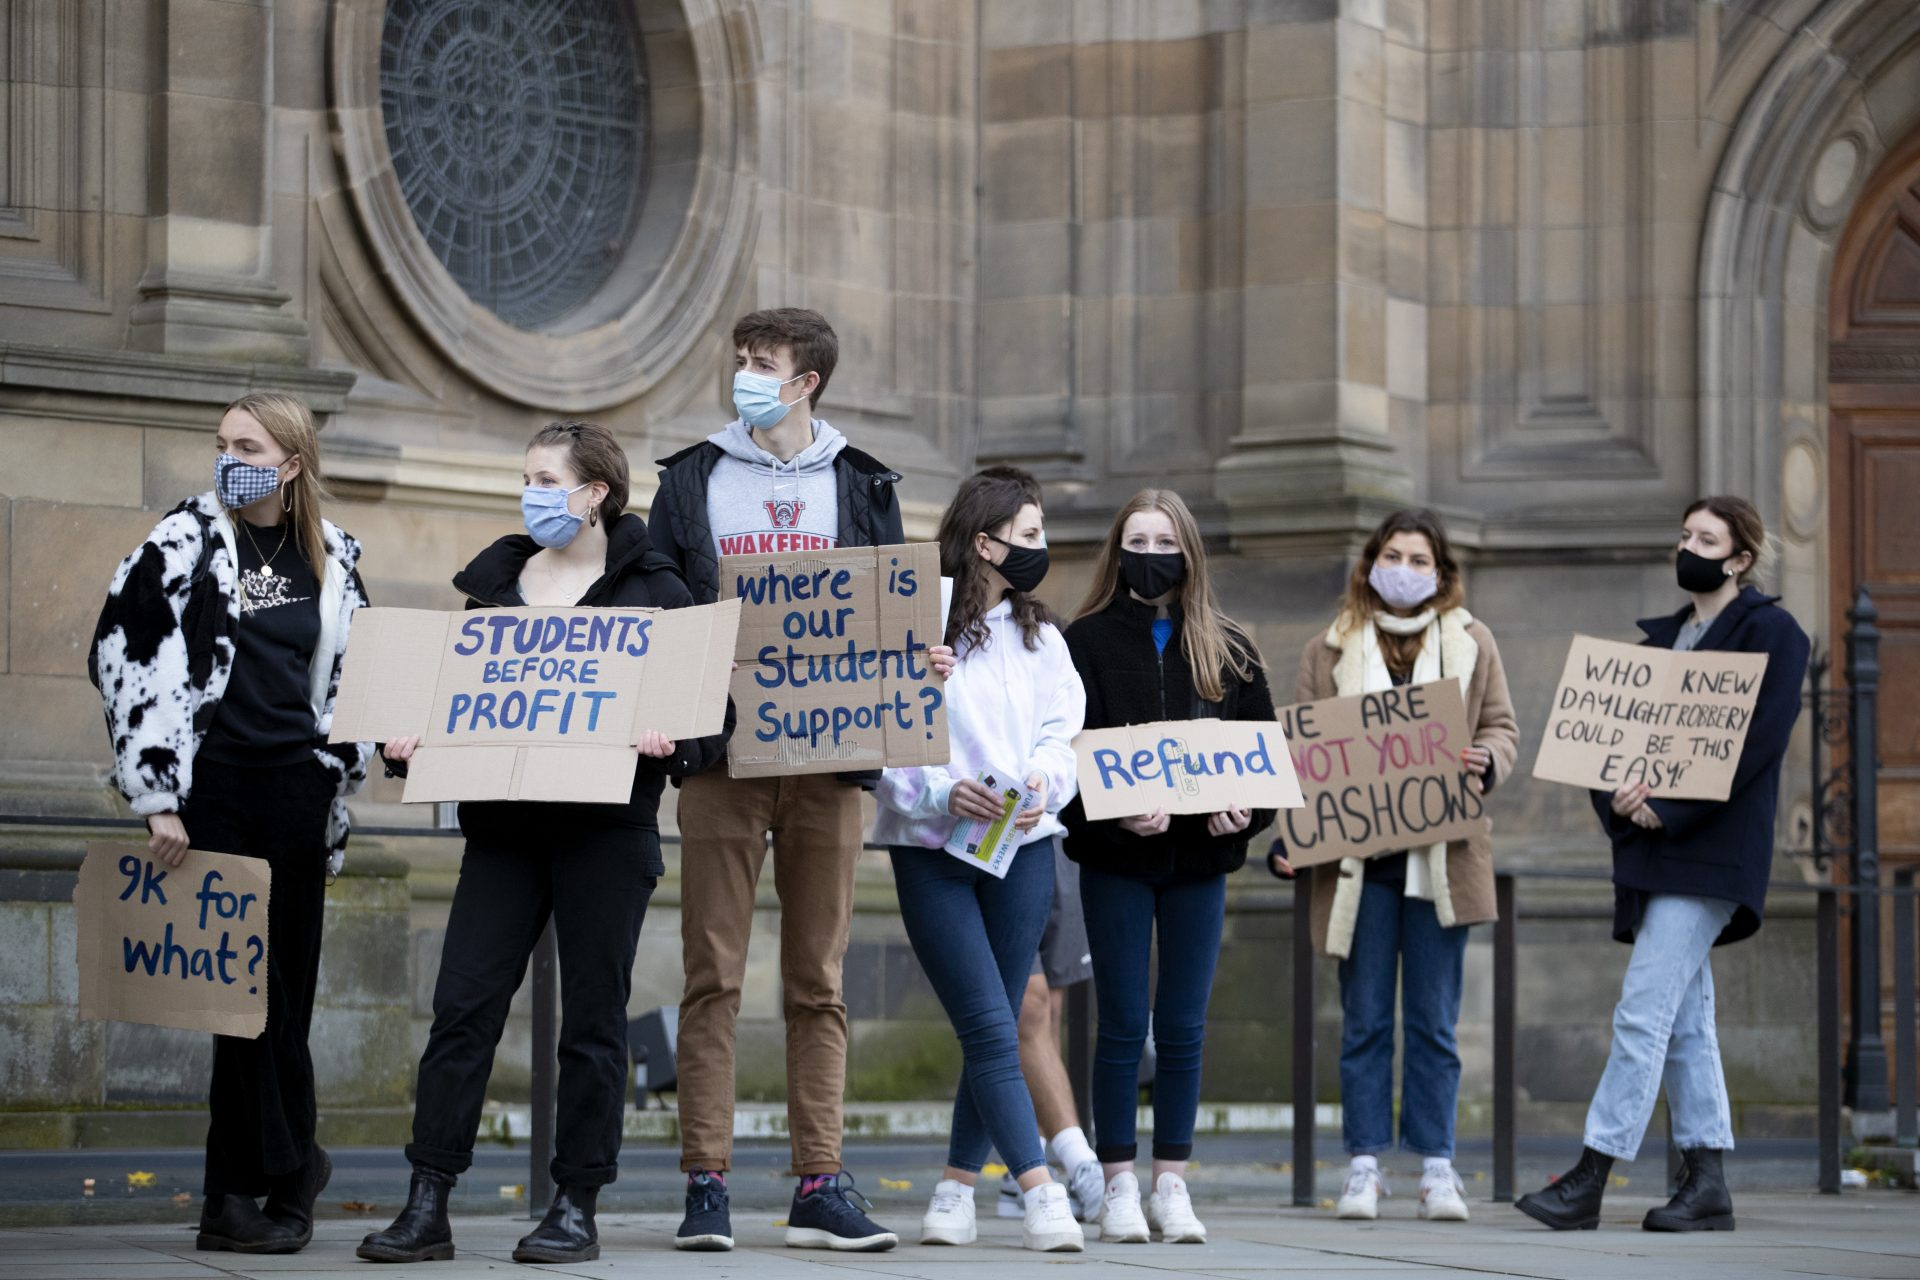 Students protest outside the McEwan Hall in Bristo Square, Edinburgh, against the University of Edinburgh's treatment of students. Photograph: PA.